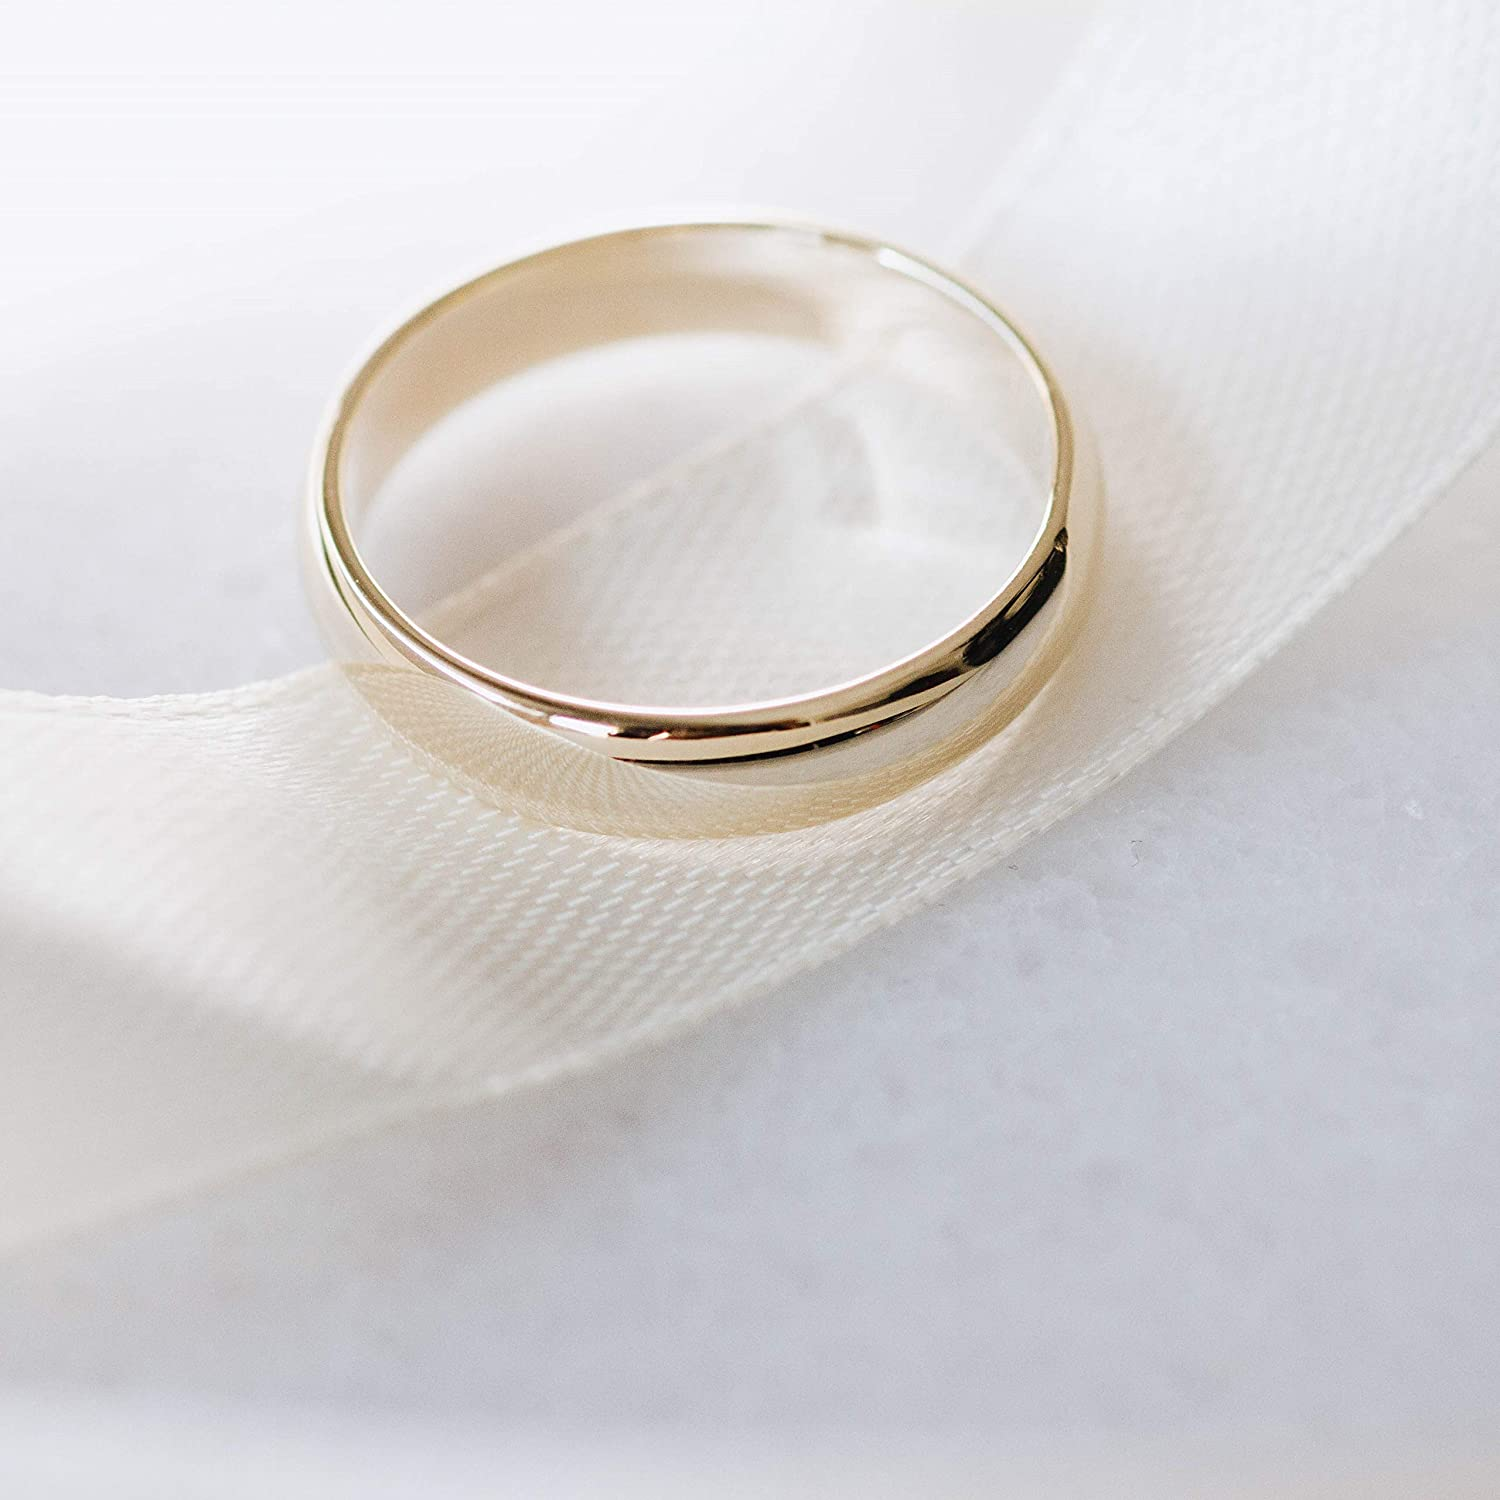 This is a graphic of Amazon.com: Wedding Band Simple 46K Gold Couples His And Her Men